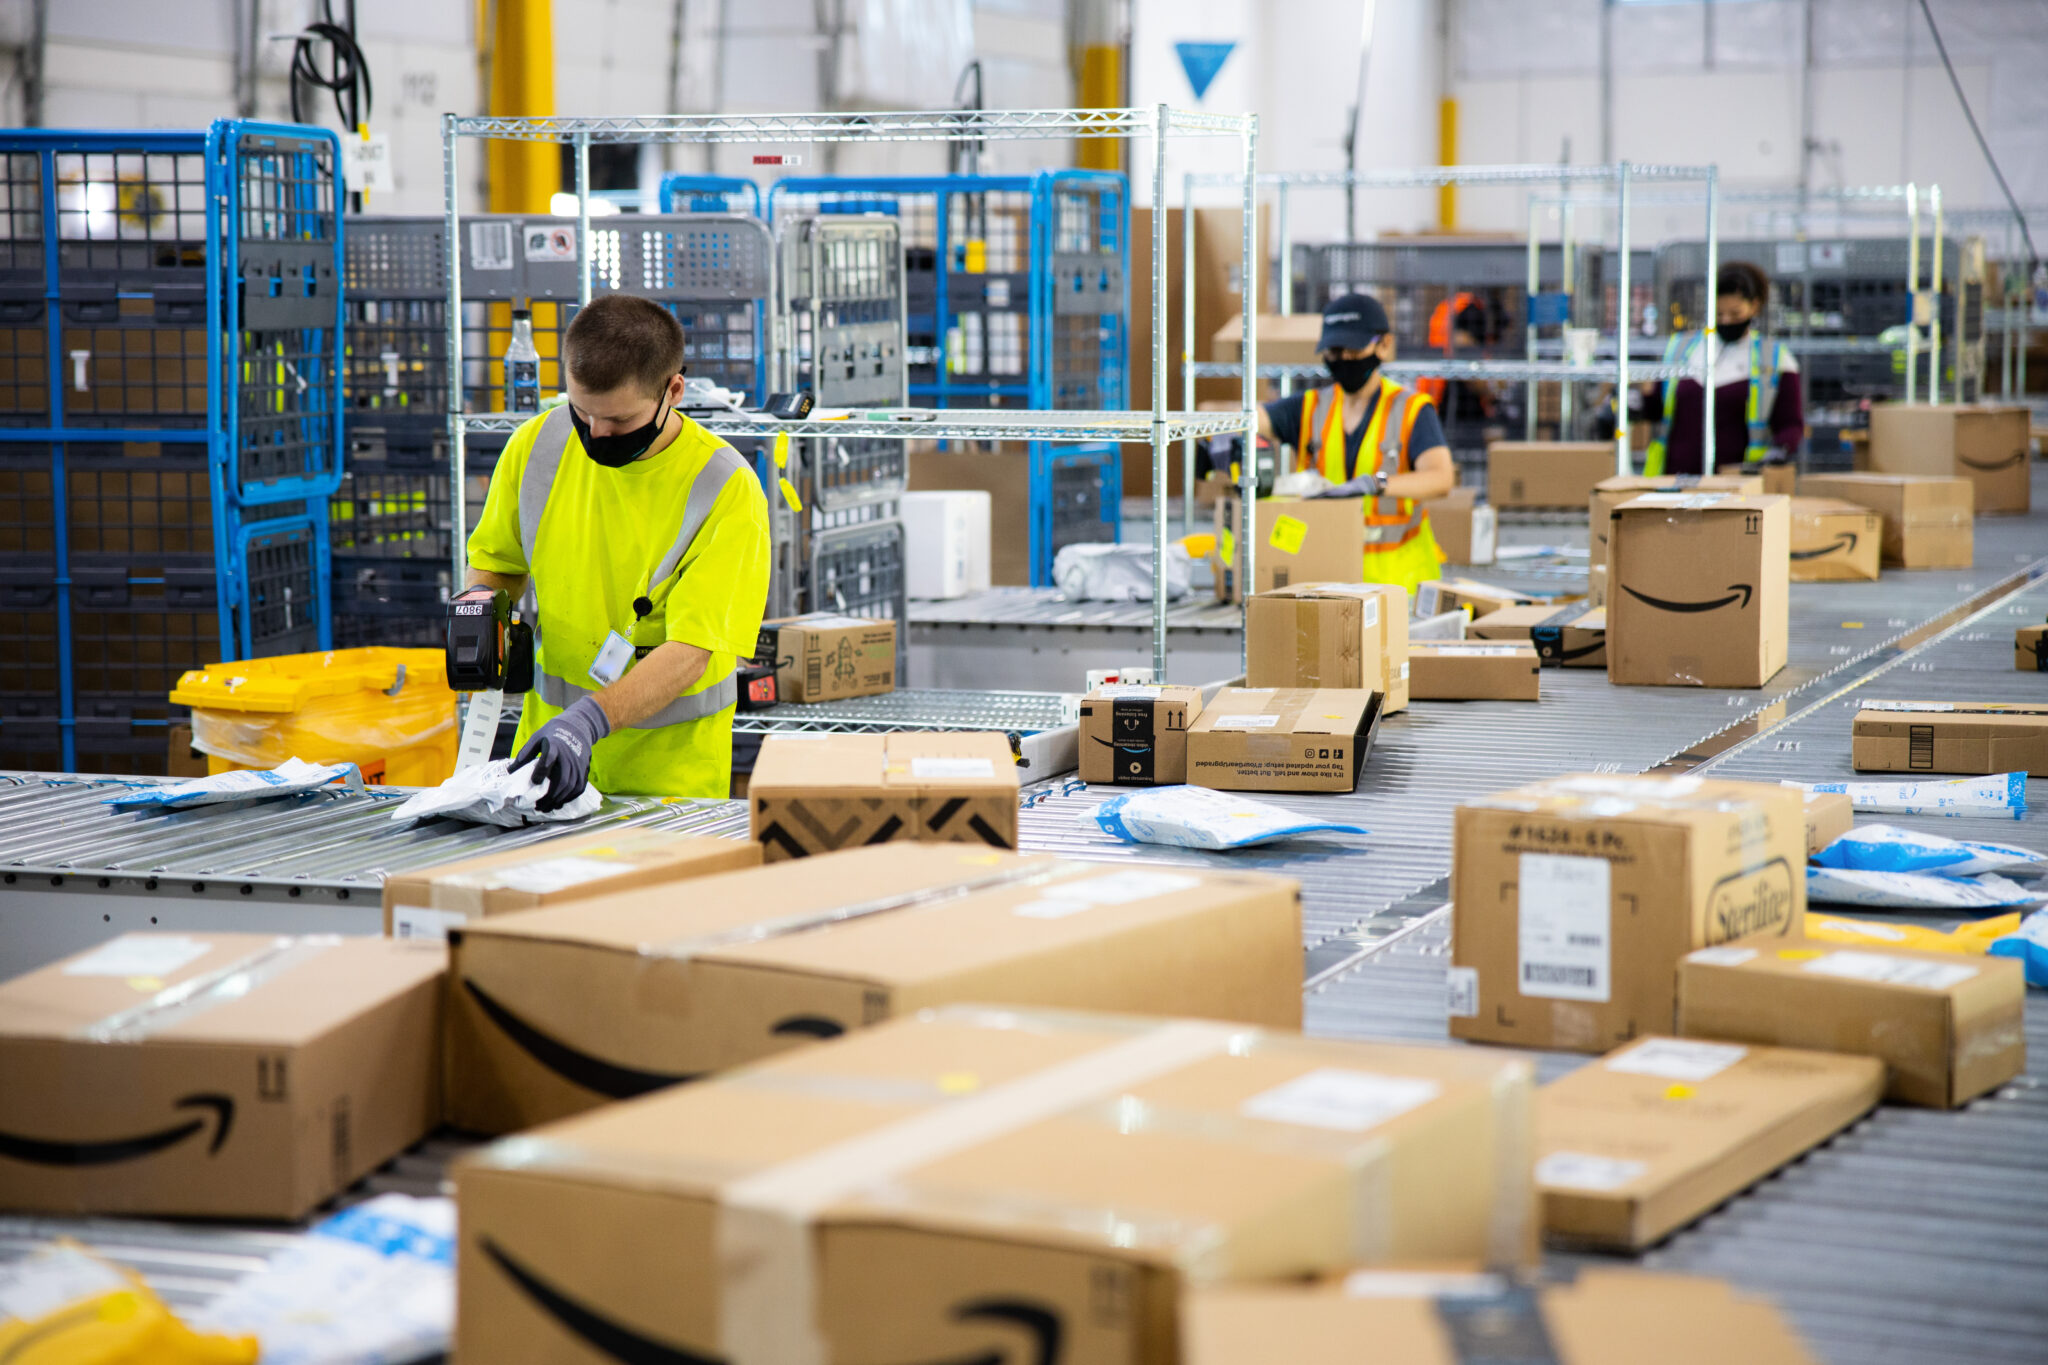 Washington state regulators say Amazon's workflow and pace injures warehouse workers